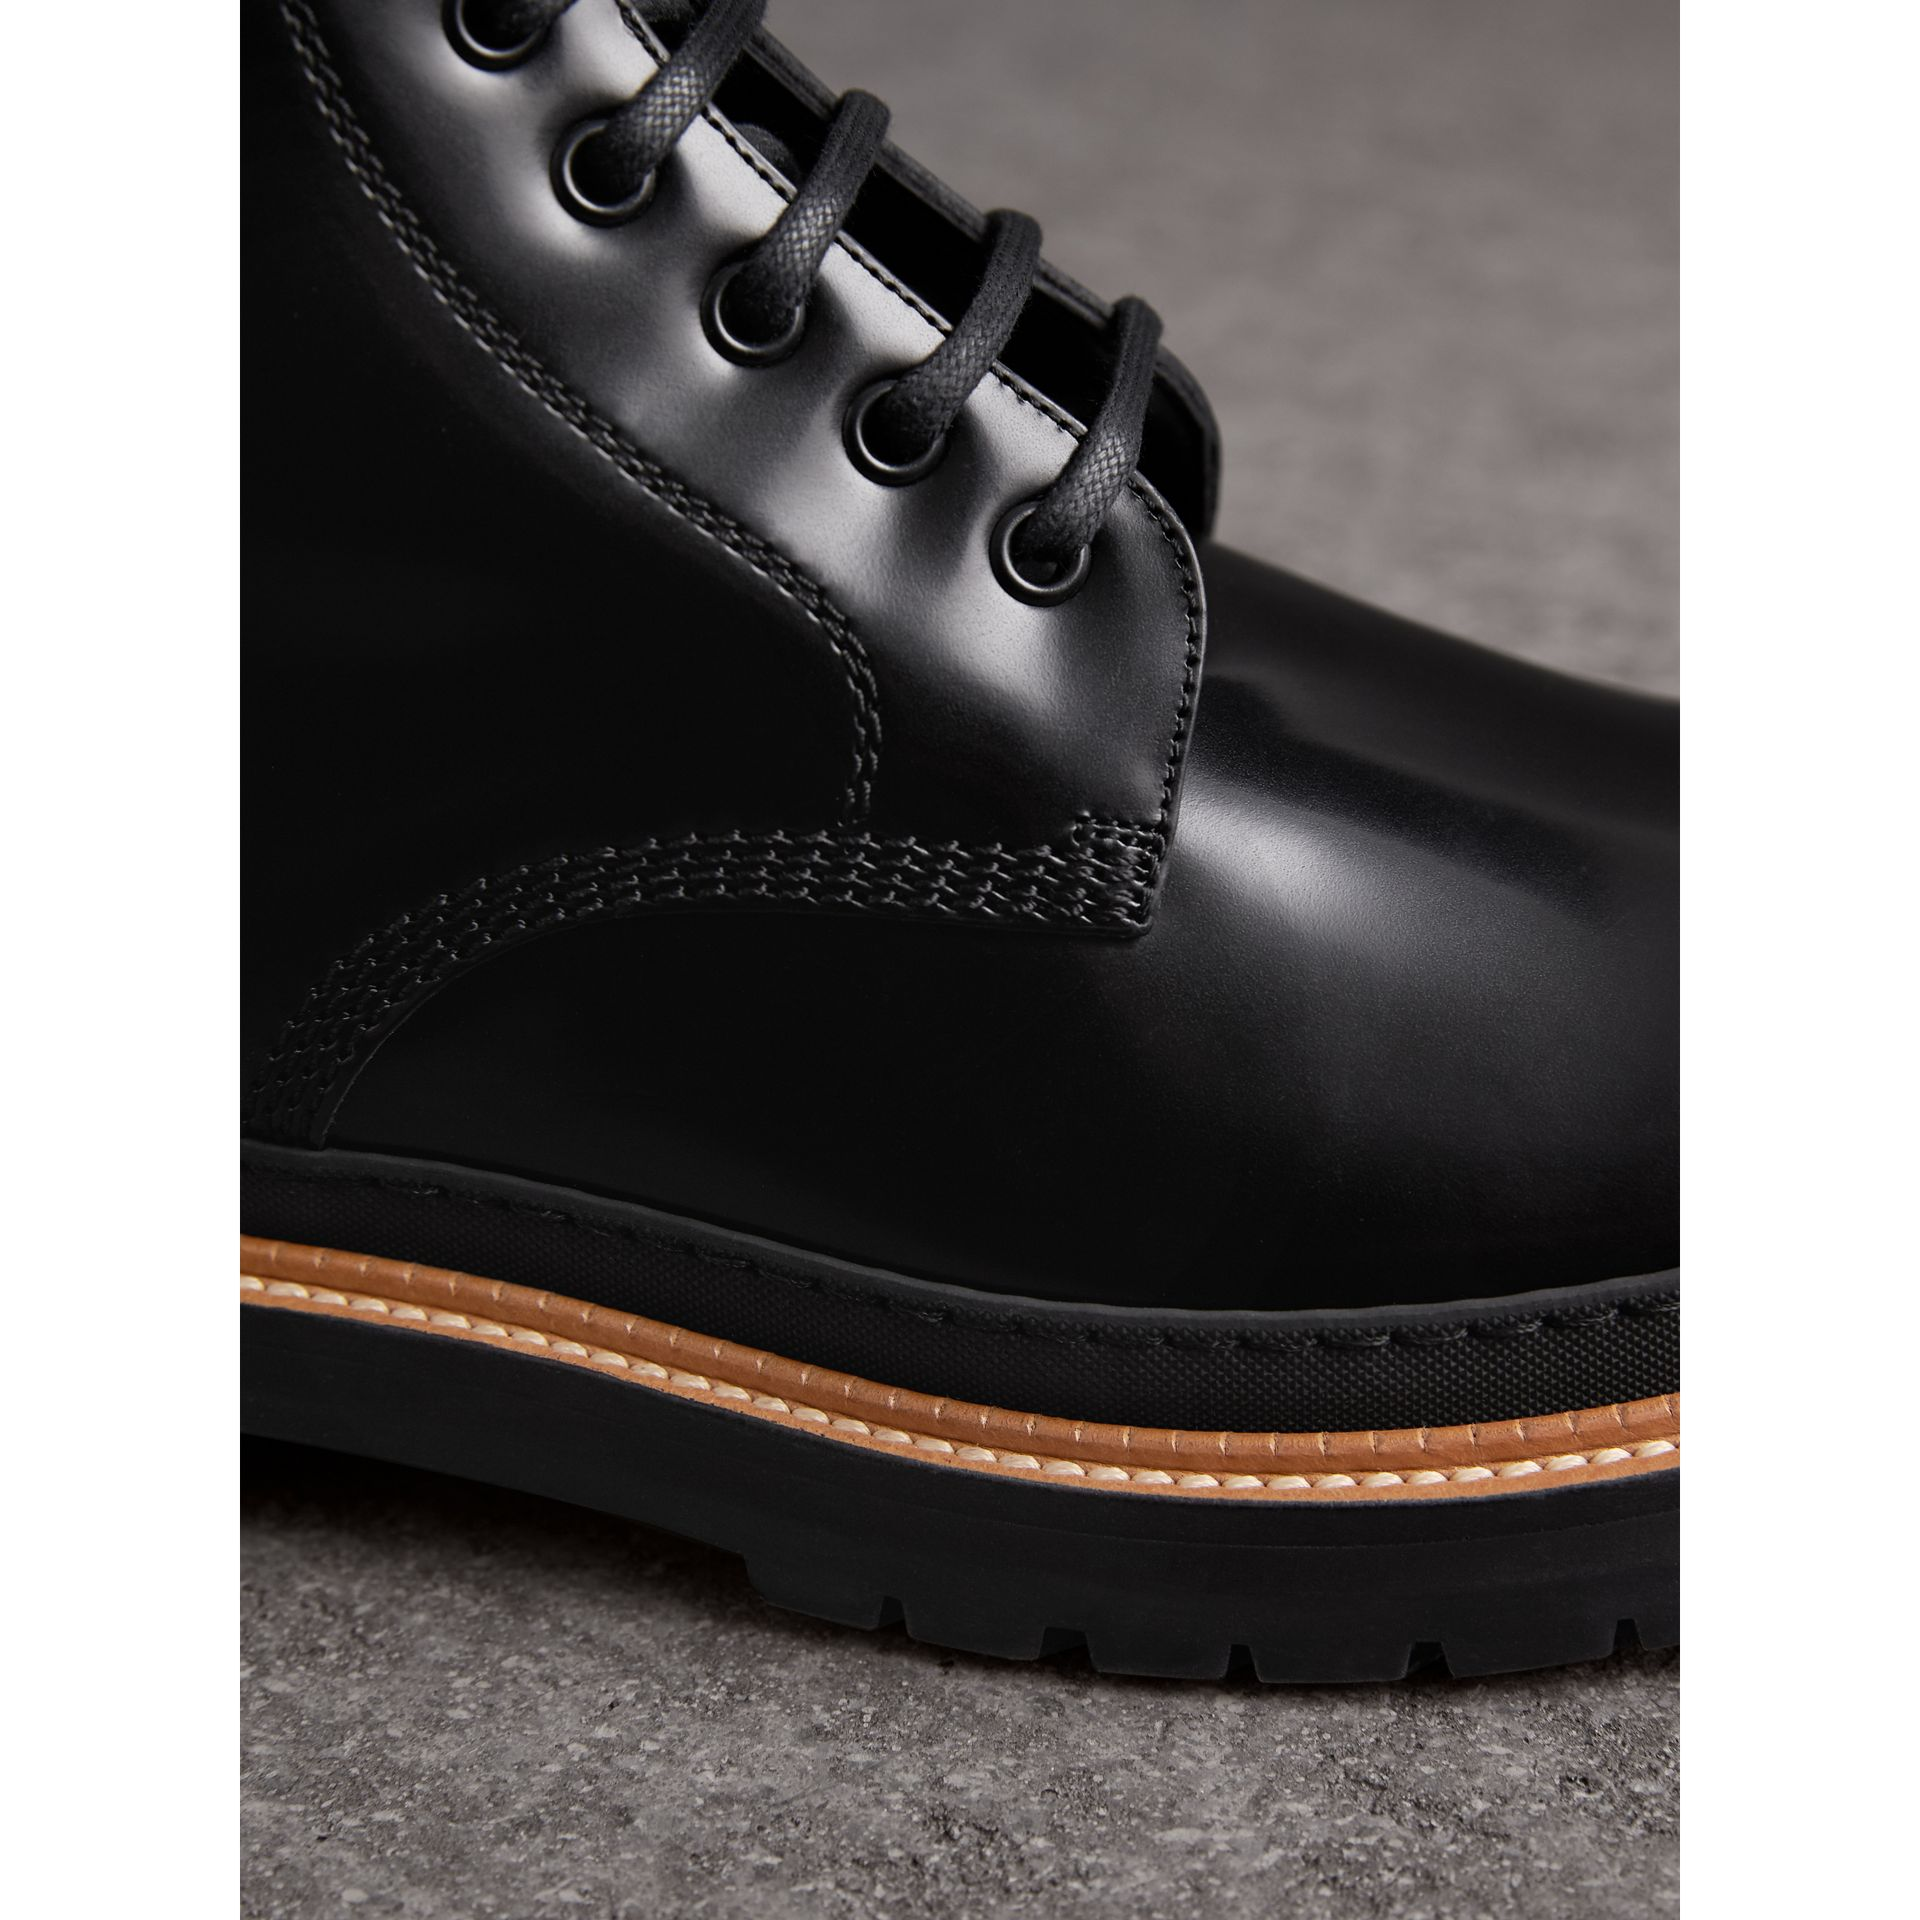 Burberry Black Lace-up Polished Leather Boots